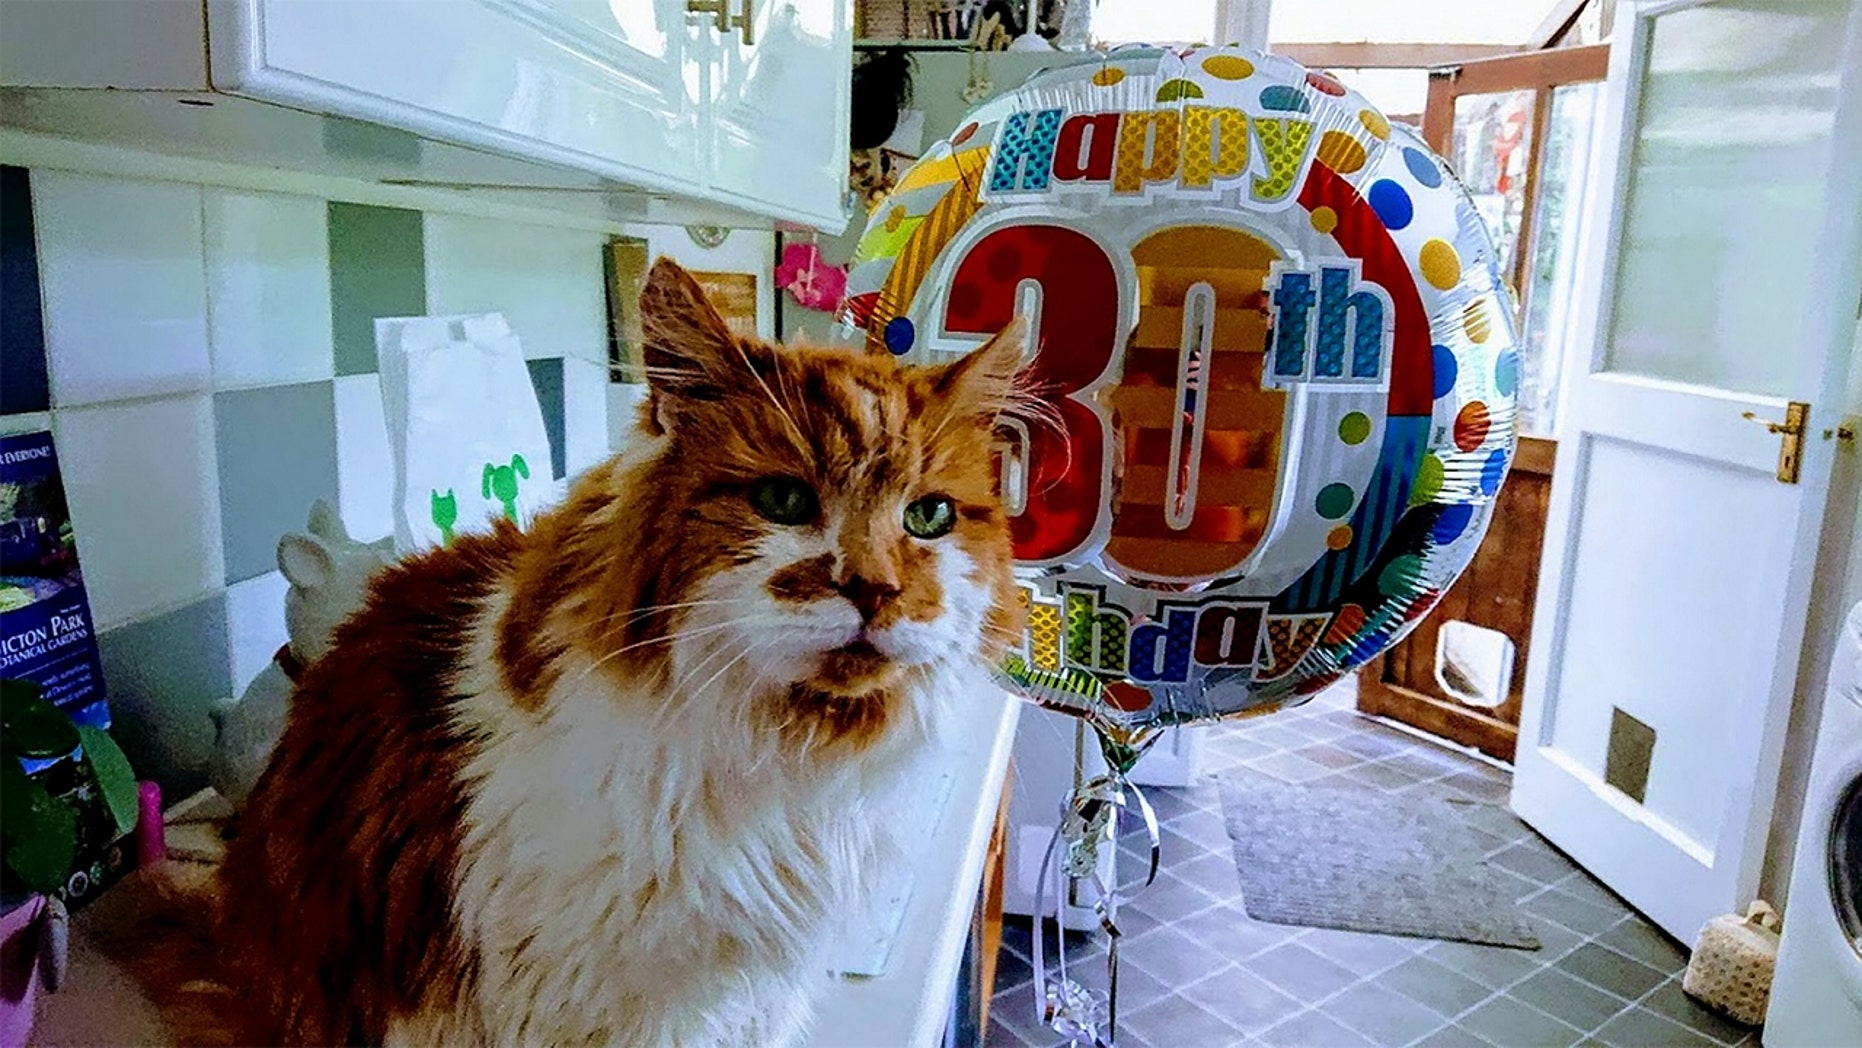 Rubble, who just turned 30, has been hailed as the world's oldest cat.